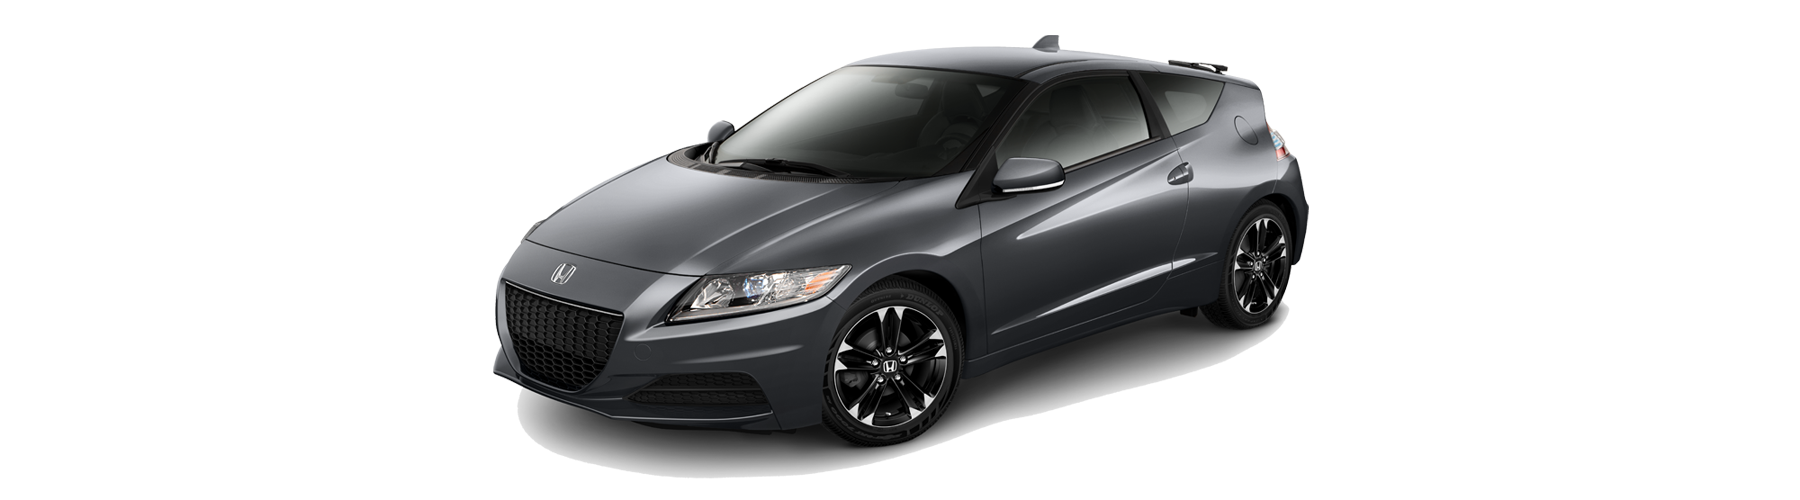 2015 Honda Cr Z New England Honda Dealers